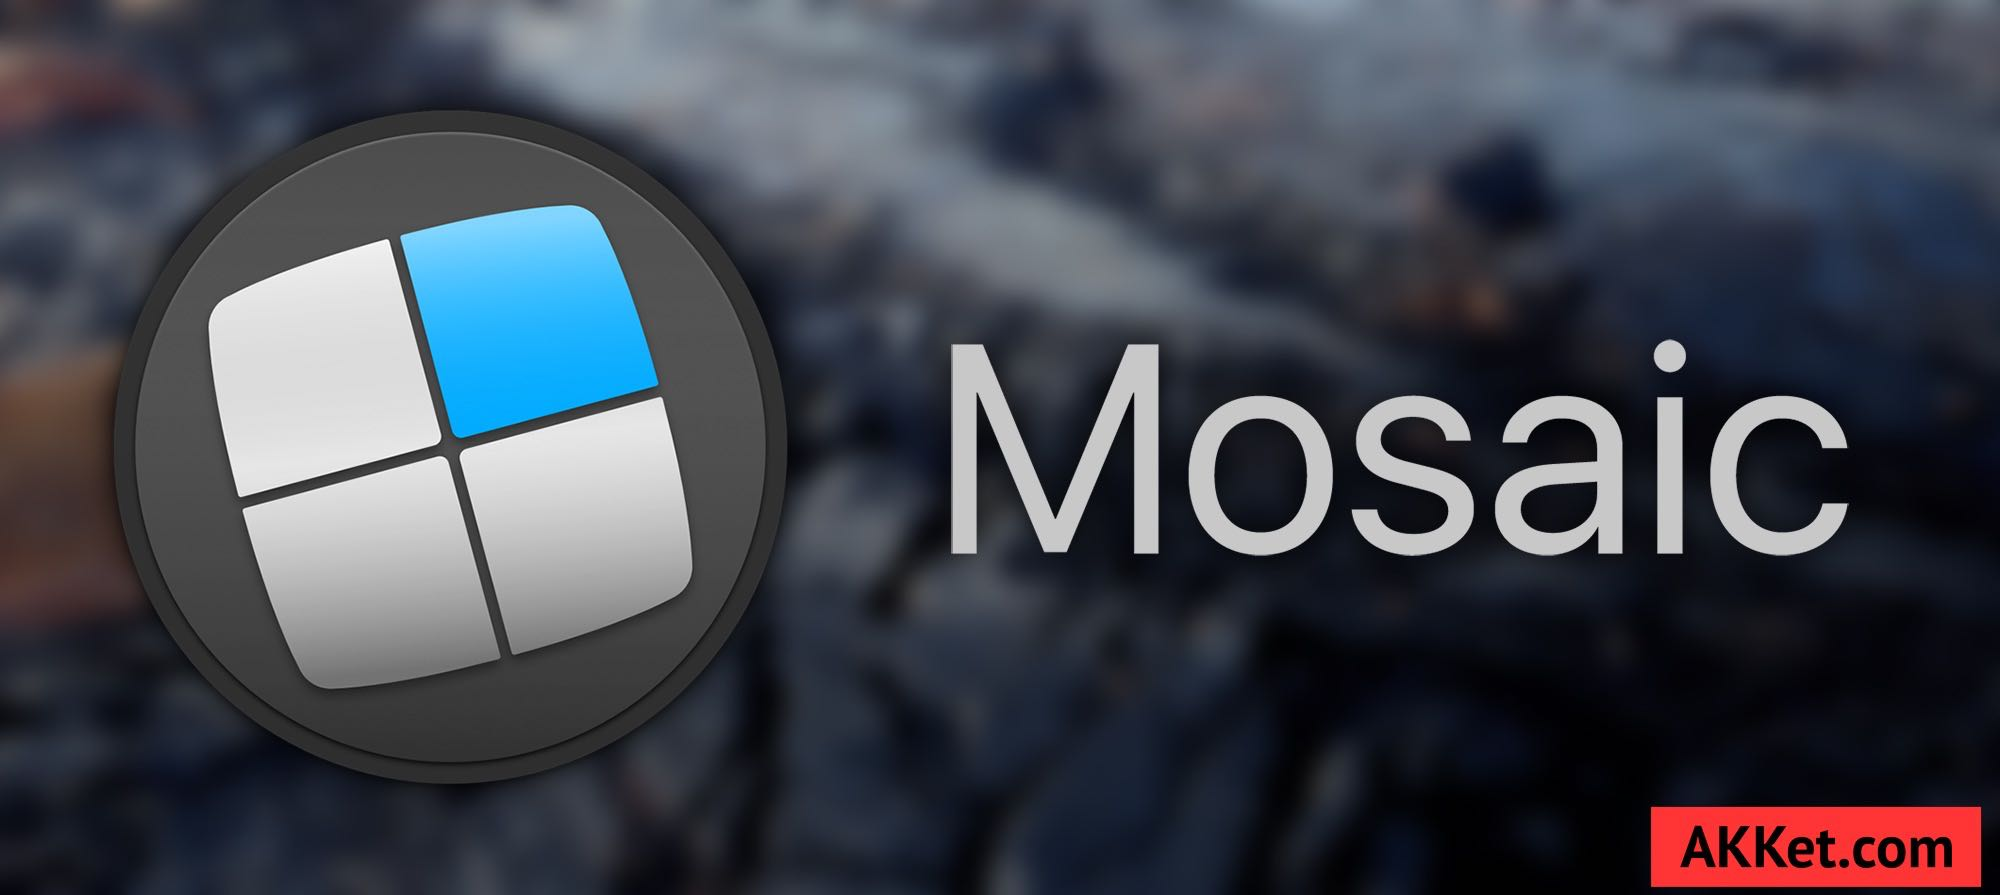 Mosaic Mac App Window Tidy Download review 12